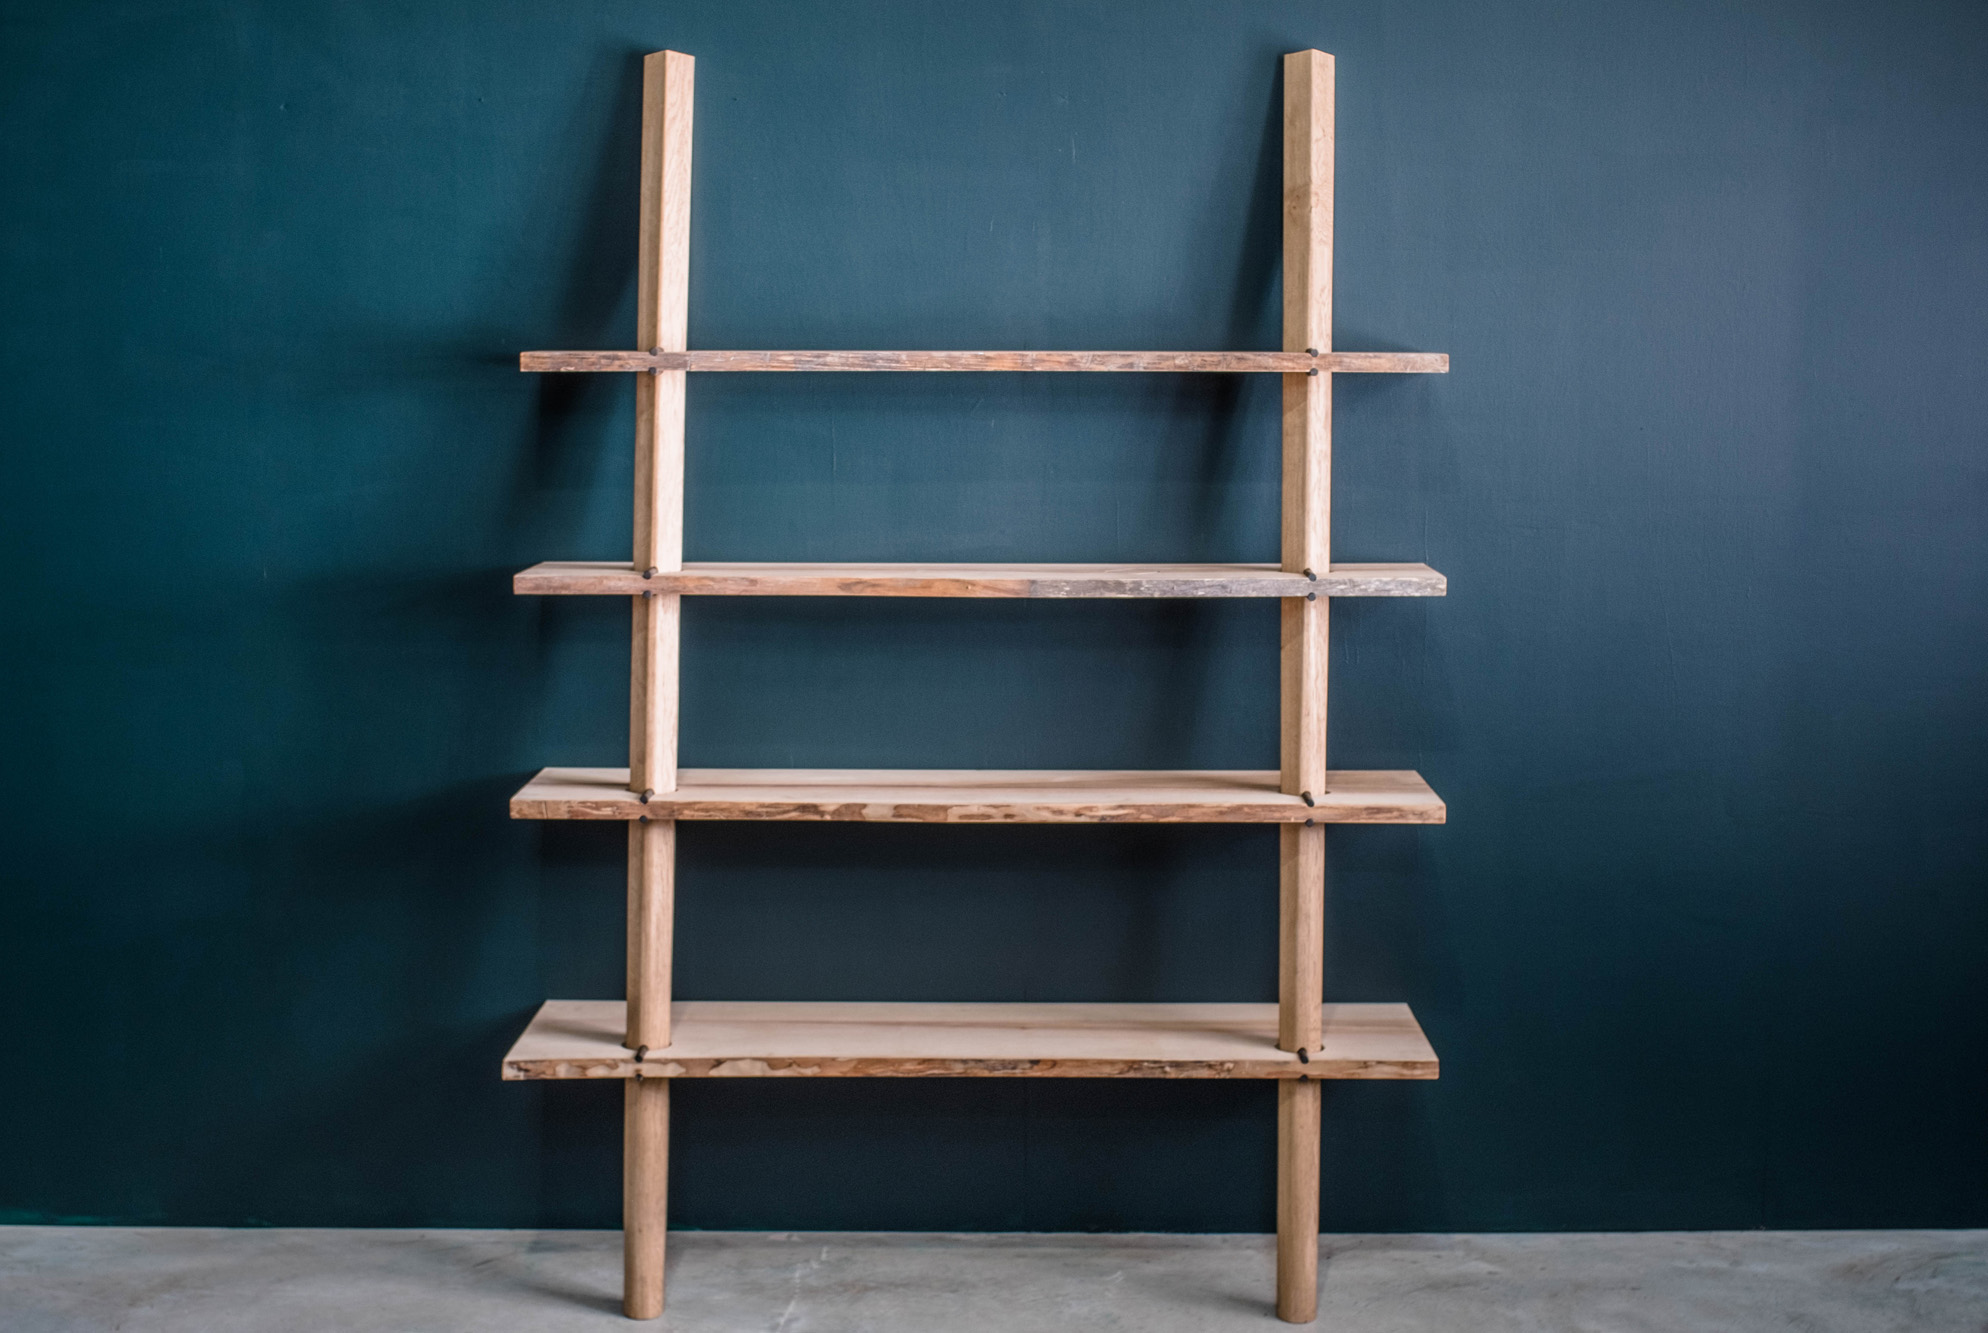 Graft Shelving Forest Maker